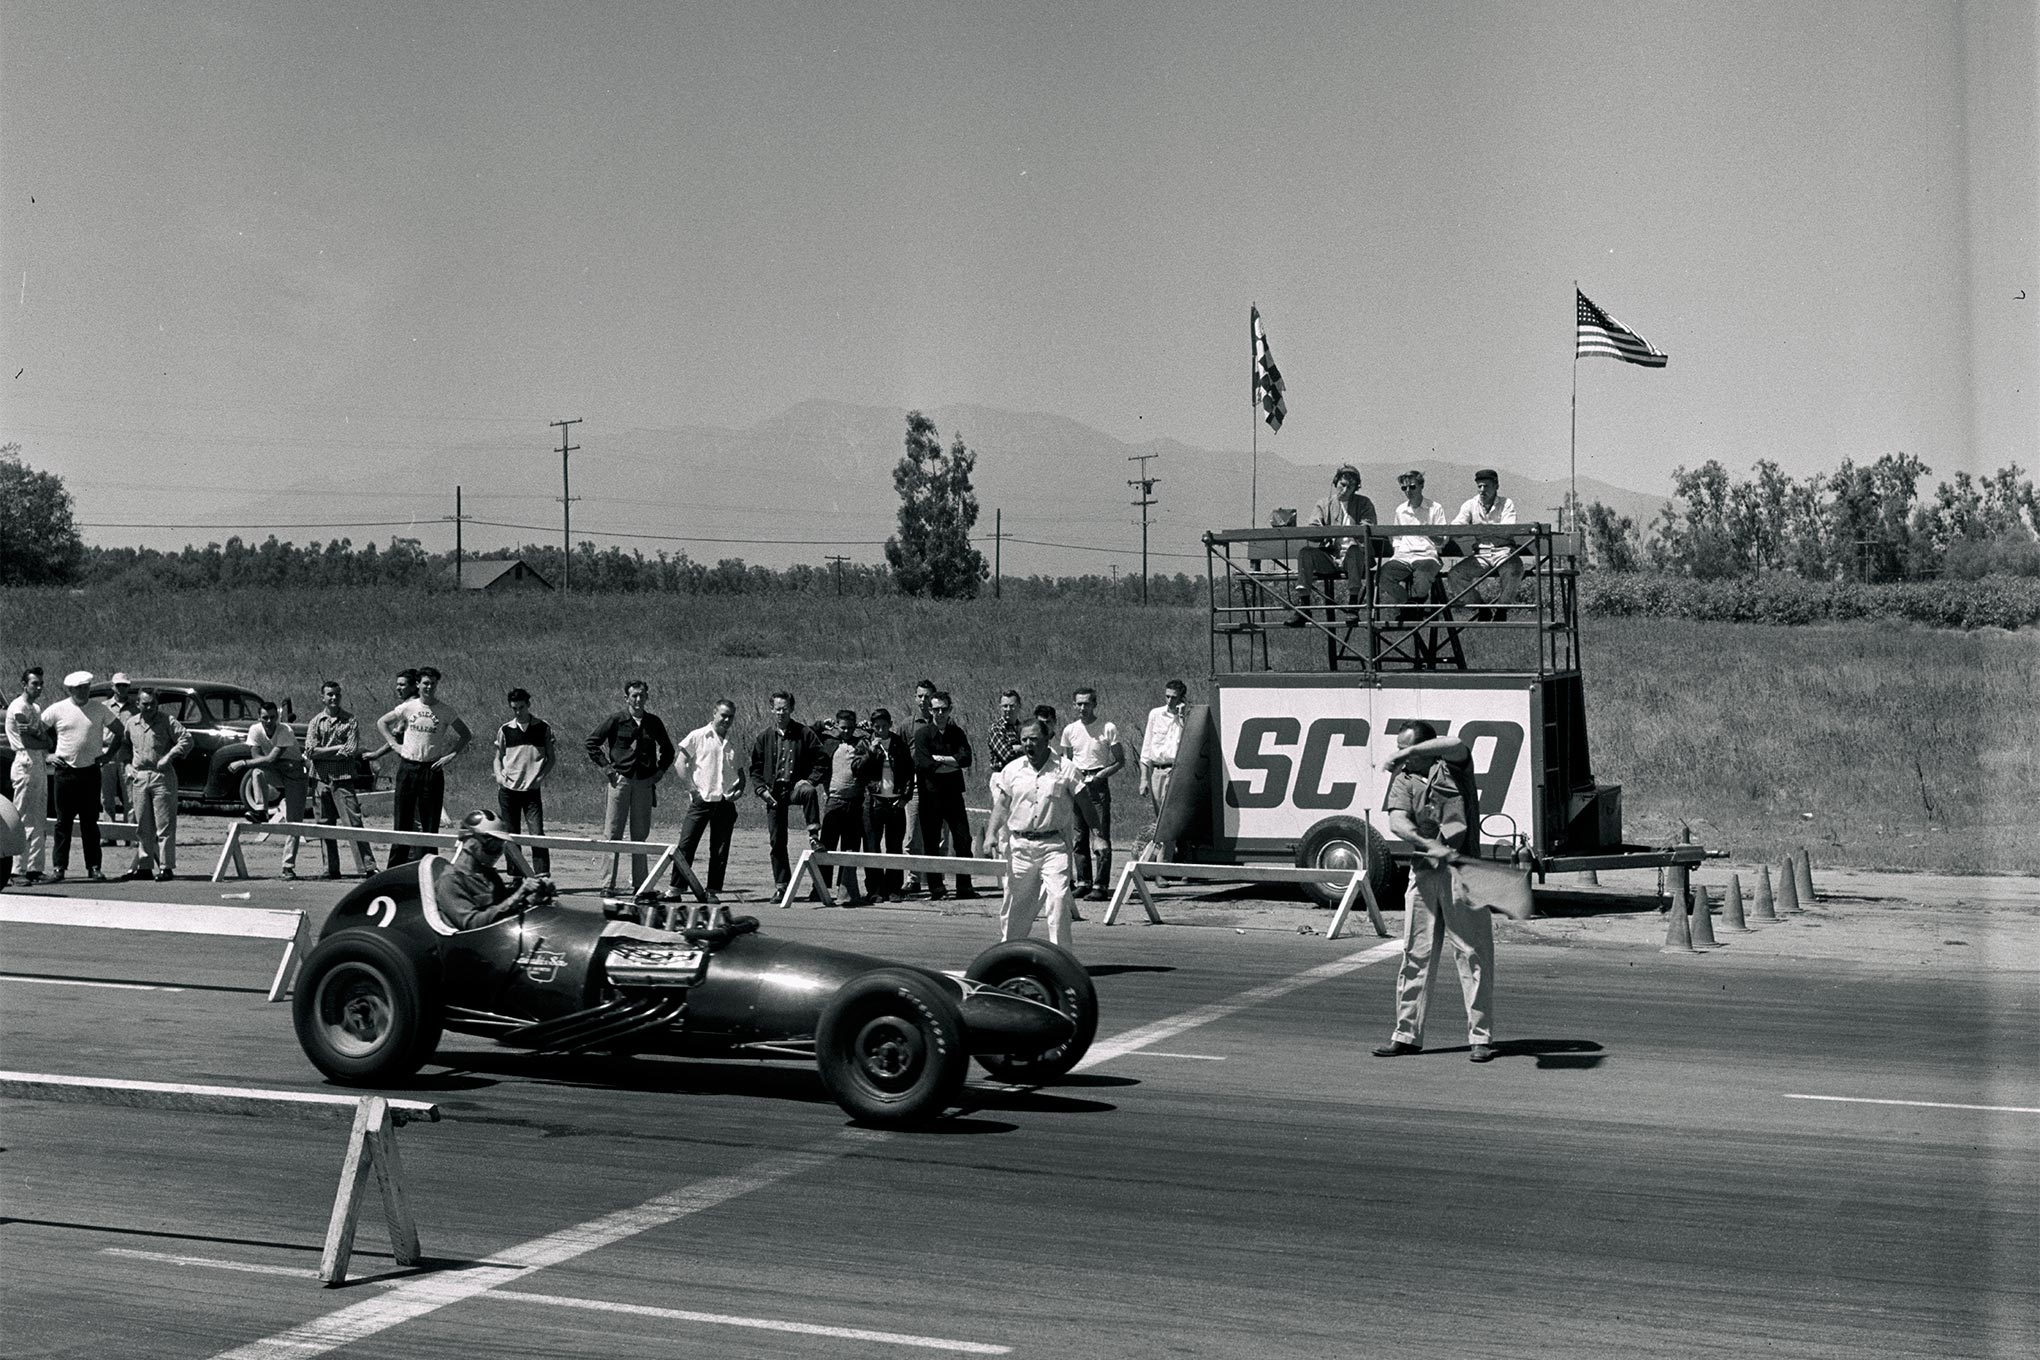 While Bustle Bomb underwent revamping in 1956, Scotty drove other cars. One was the Chrysler-powered Ed Losinski–Harry Duncan dragster shown here at Colton.